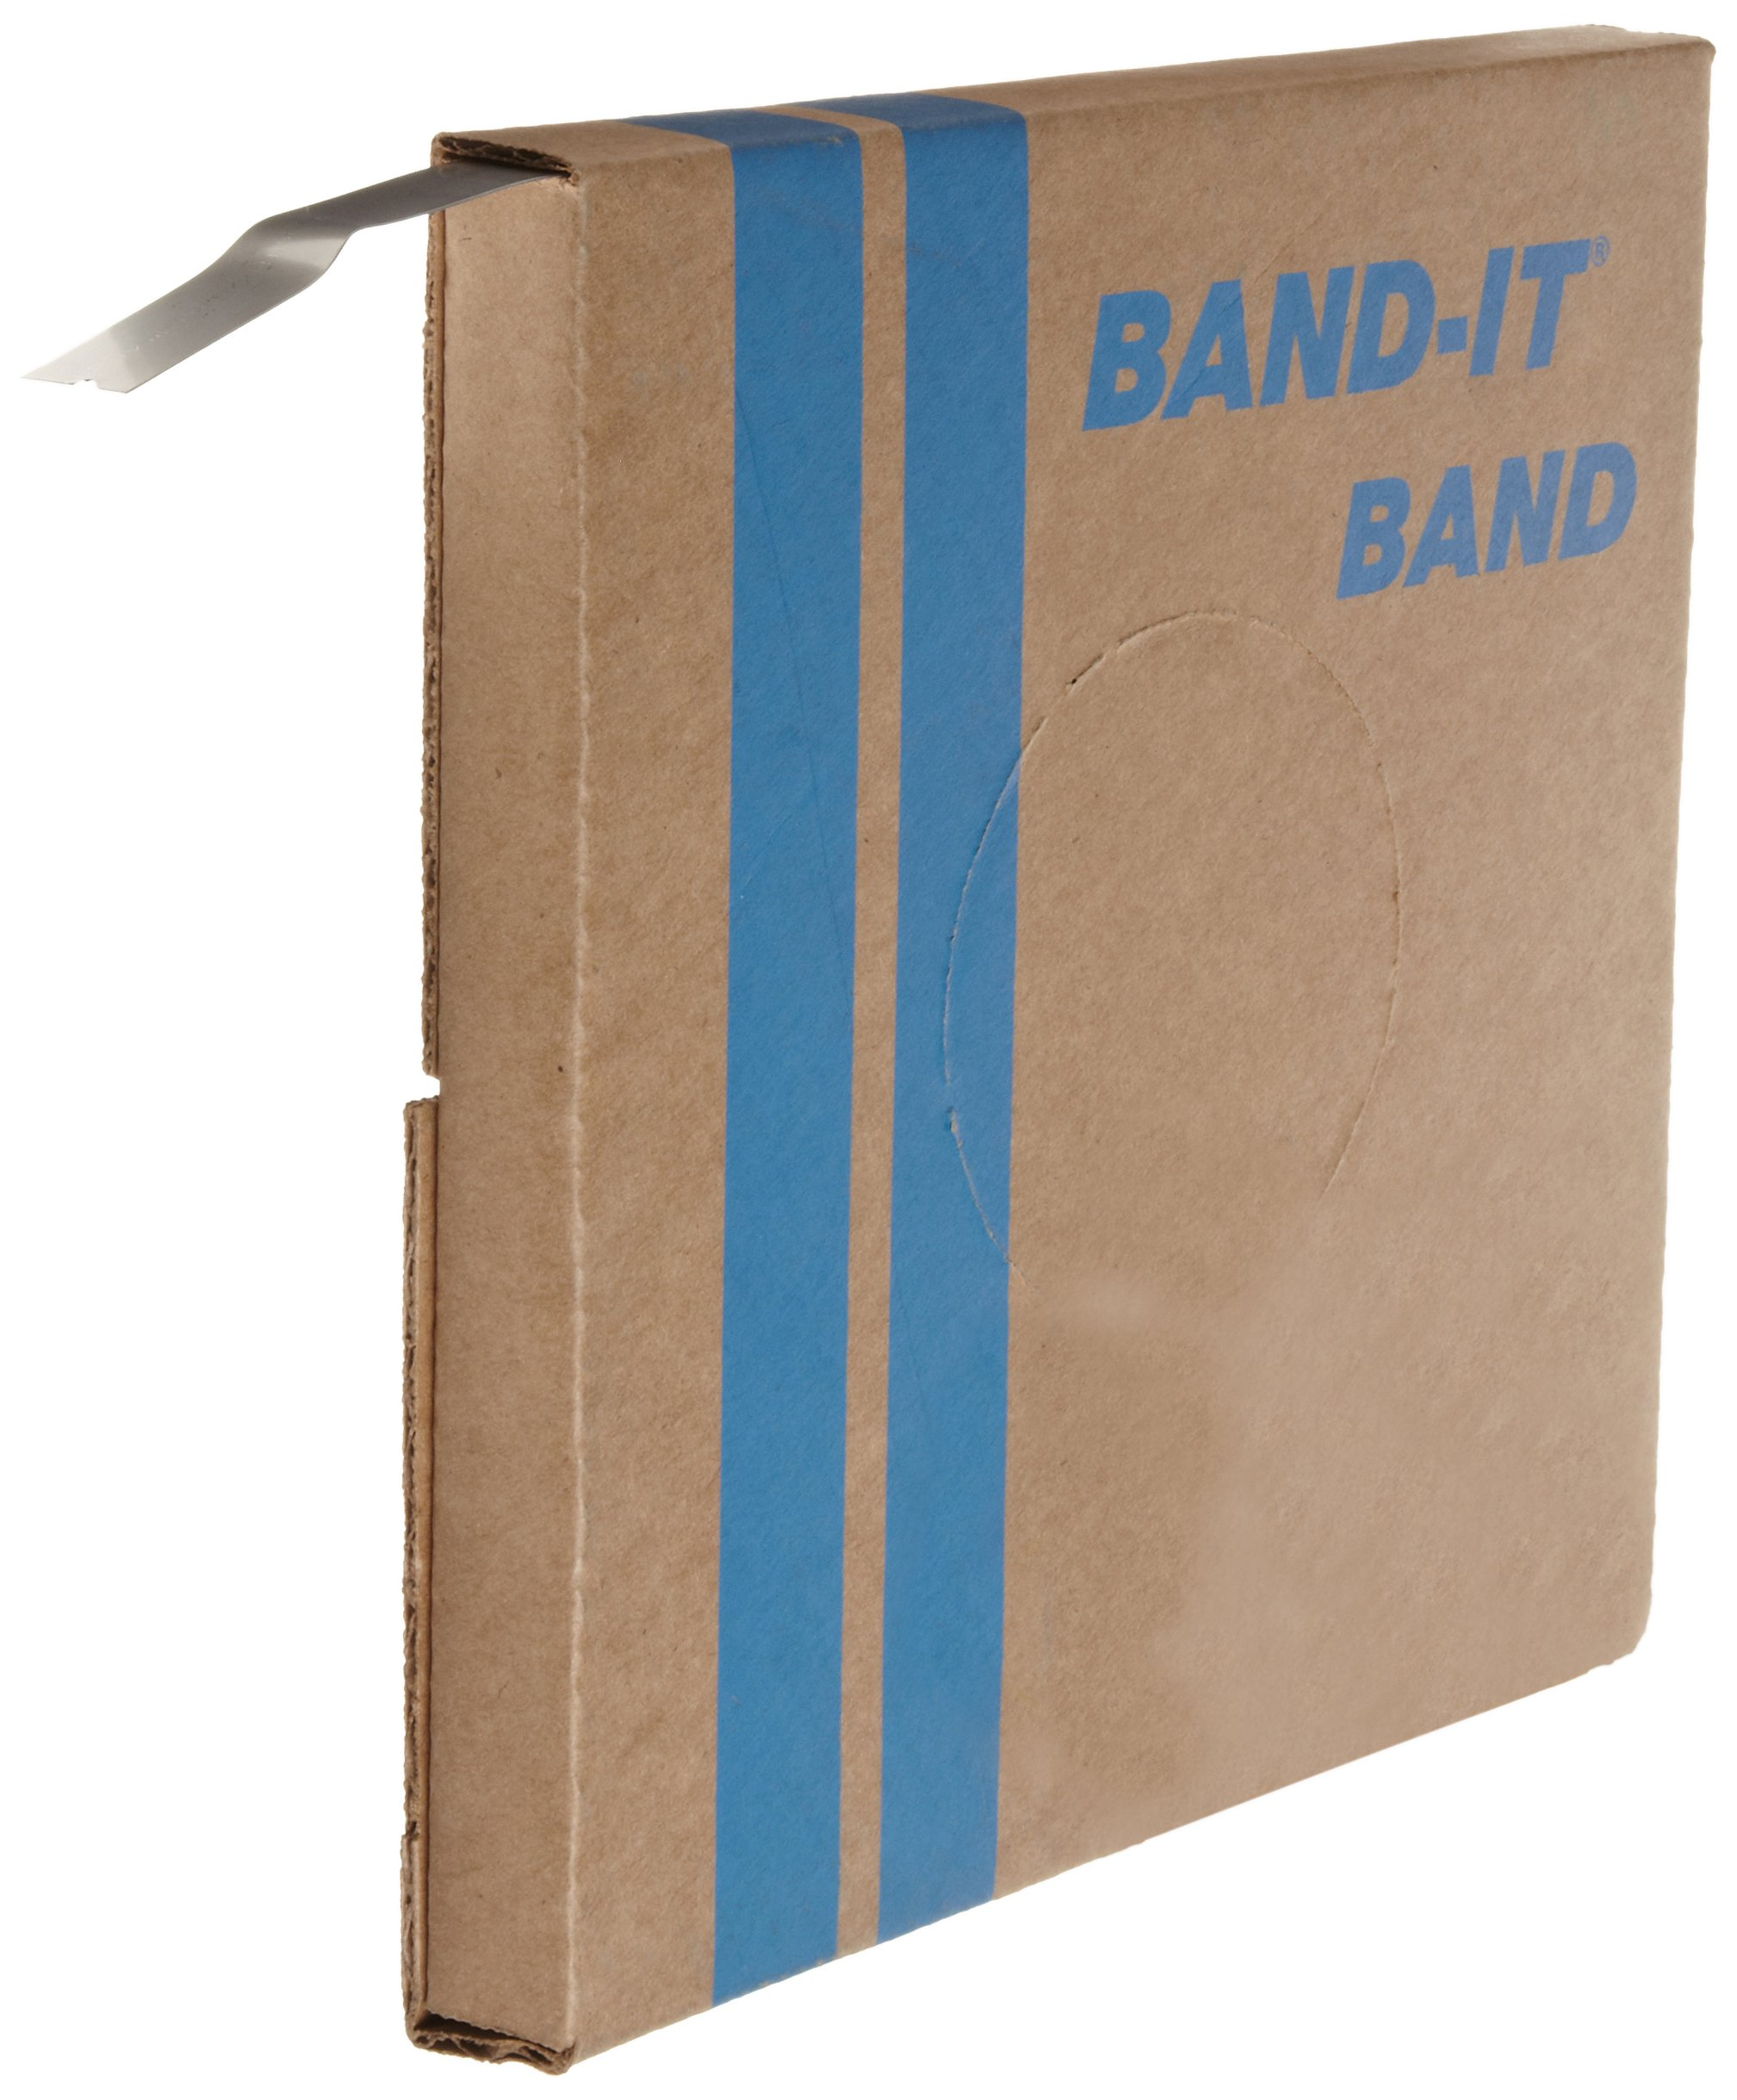 BAND-IT VALU-Strap Band C13699, 200/300 Stainless Steel, 3/4'' Wide x 0.015'' Thick (100 Foot Roll) by Band-It